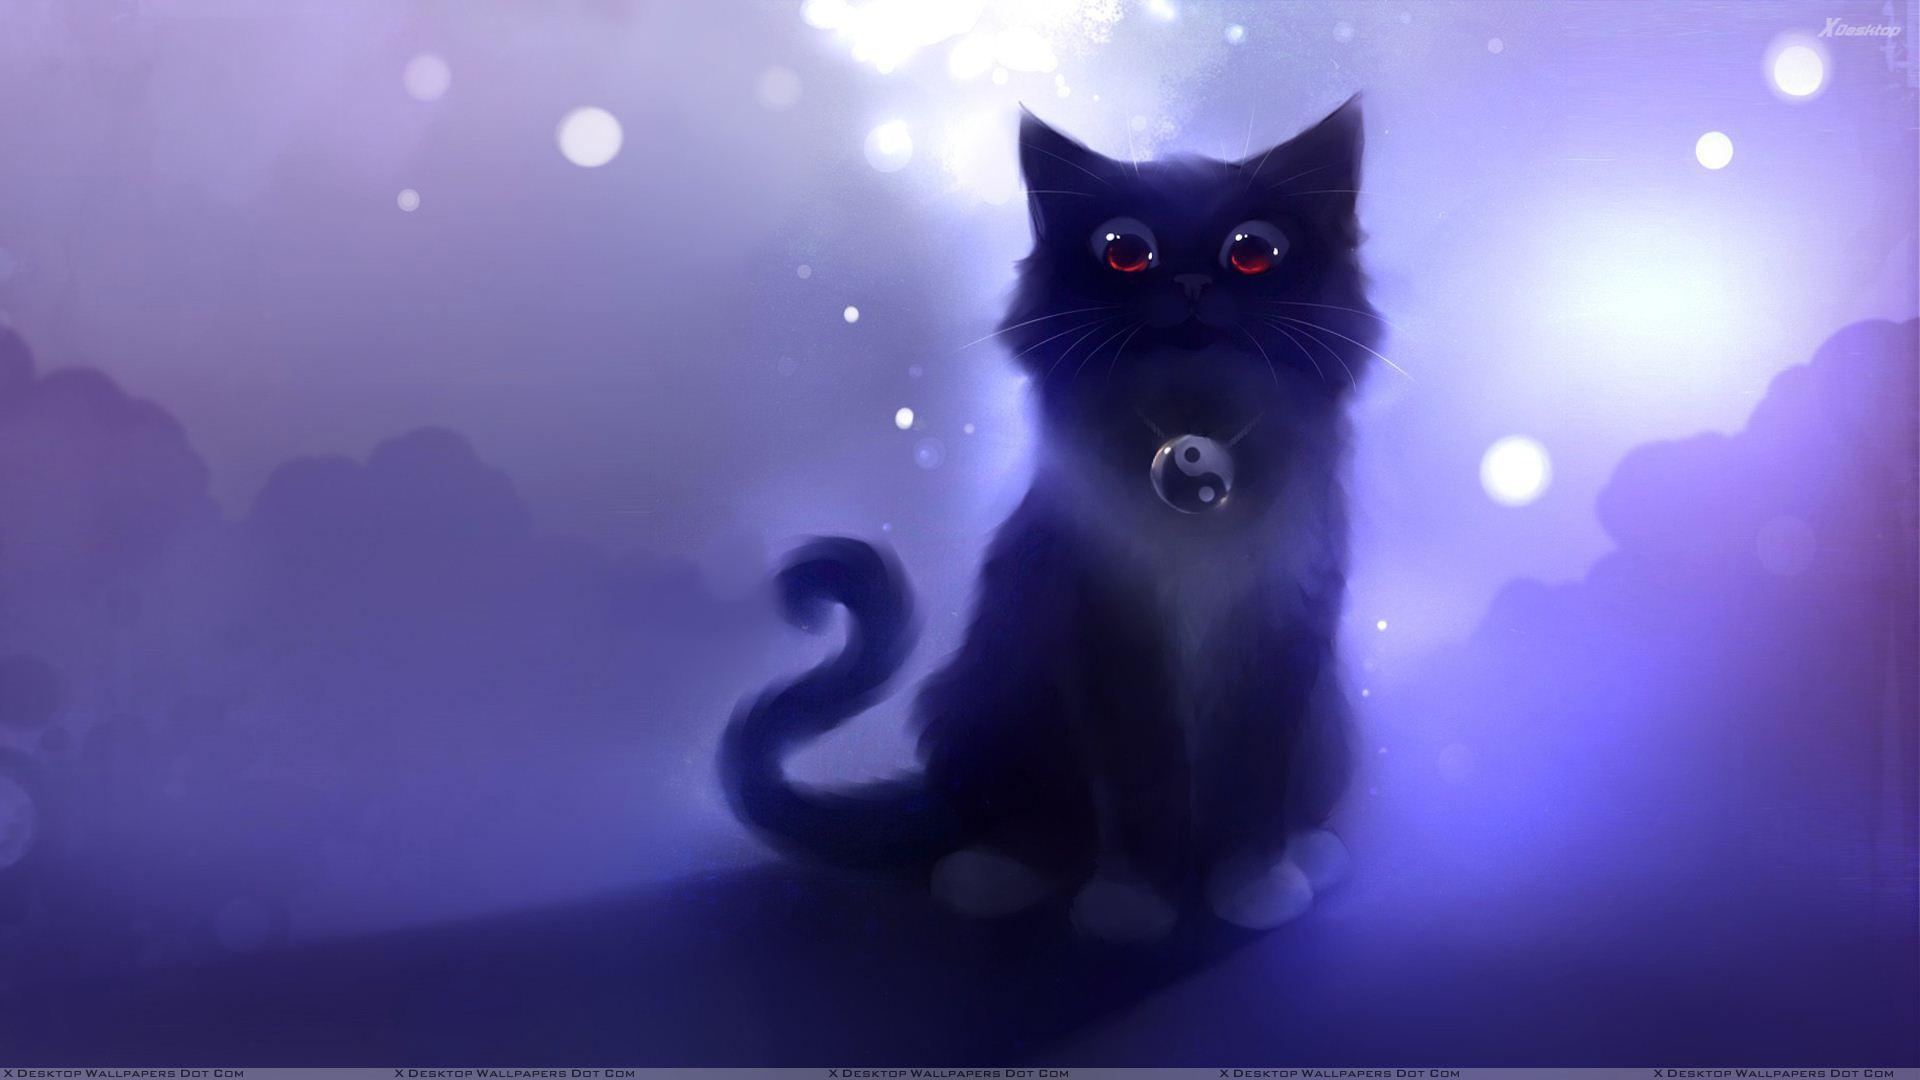 Cartoon cat wallpapers wallpaper cave - Anime cat wallpaper ...